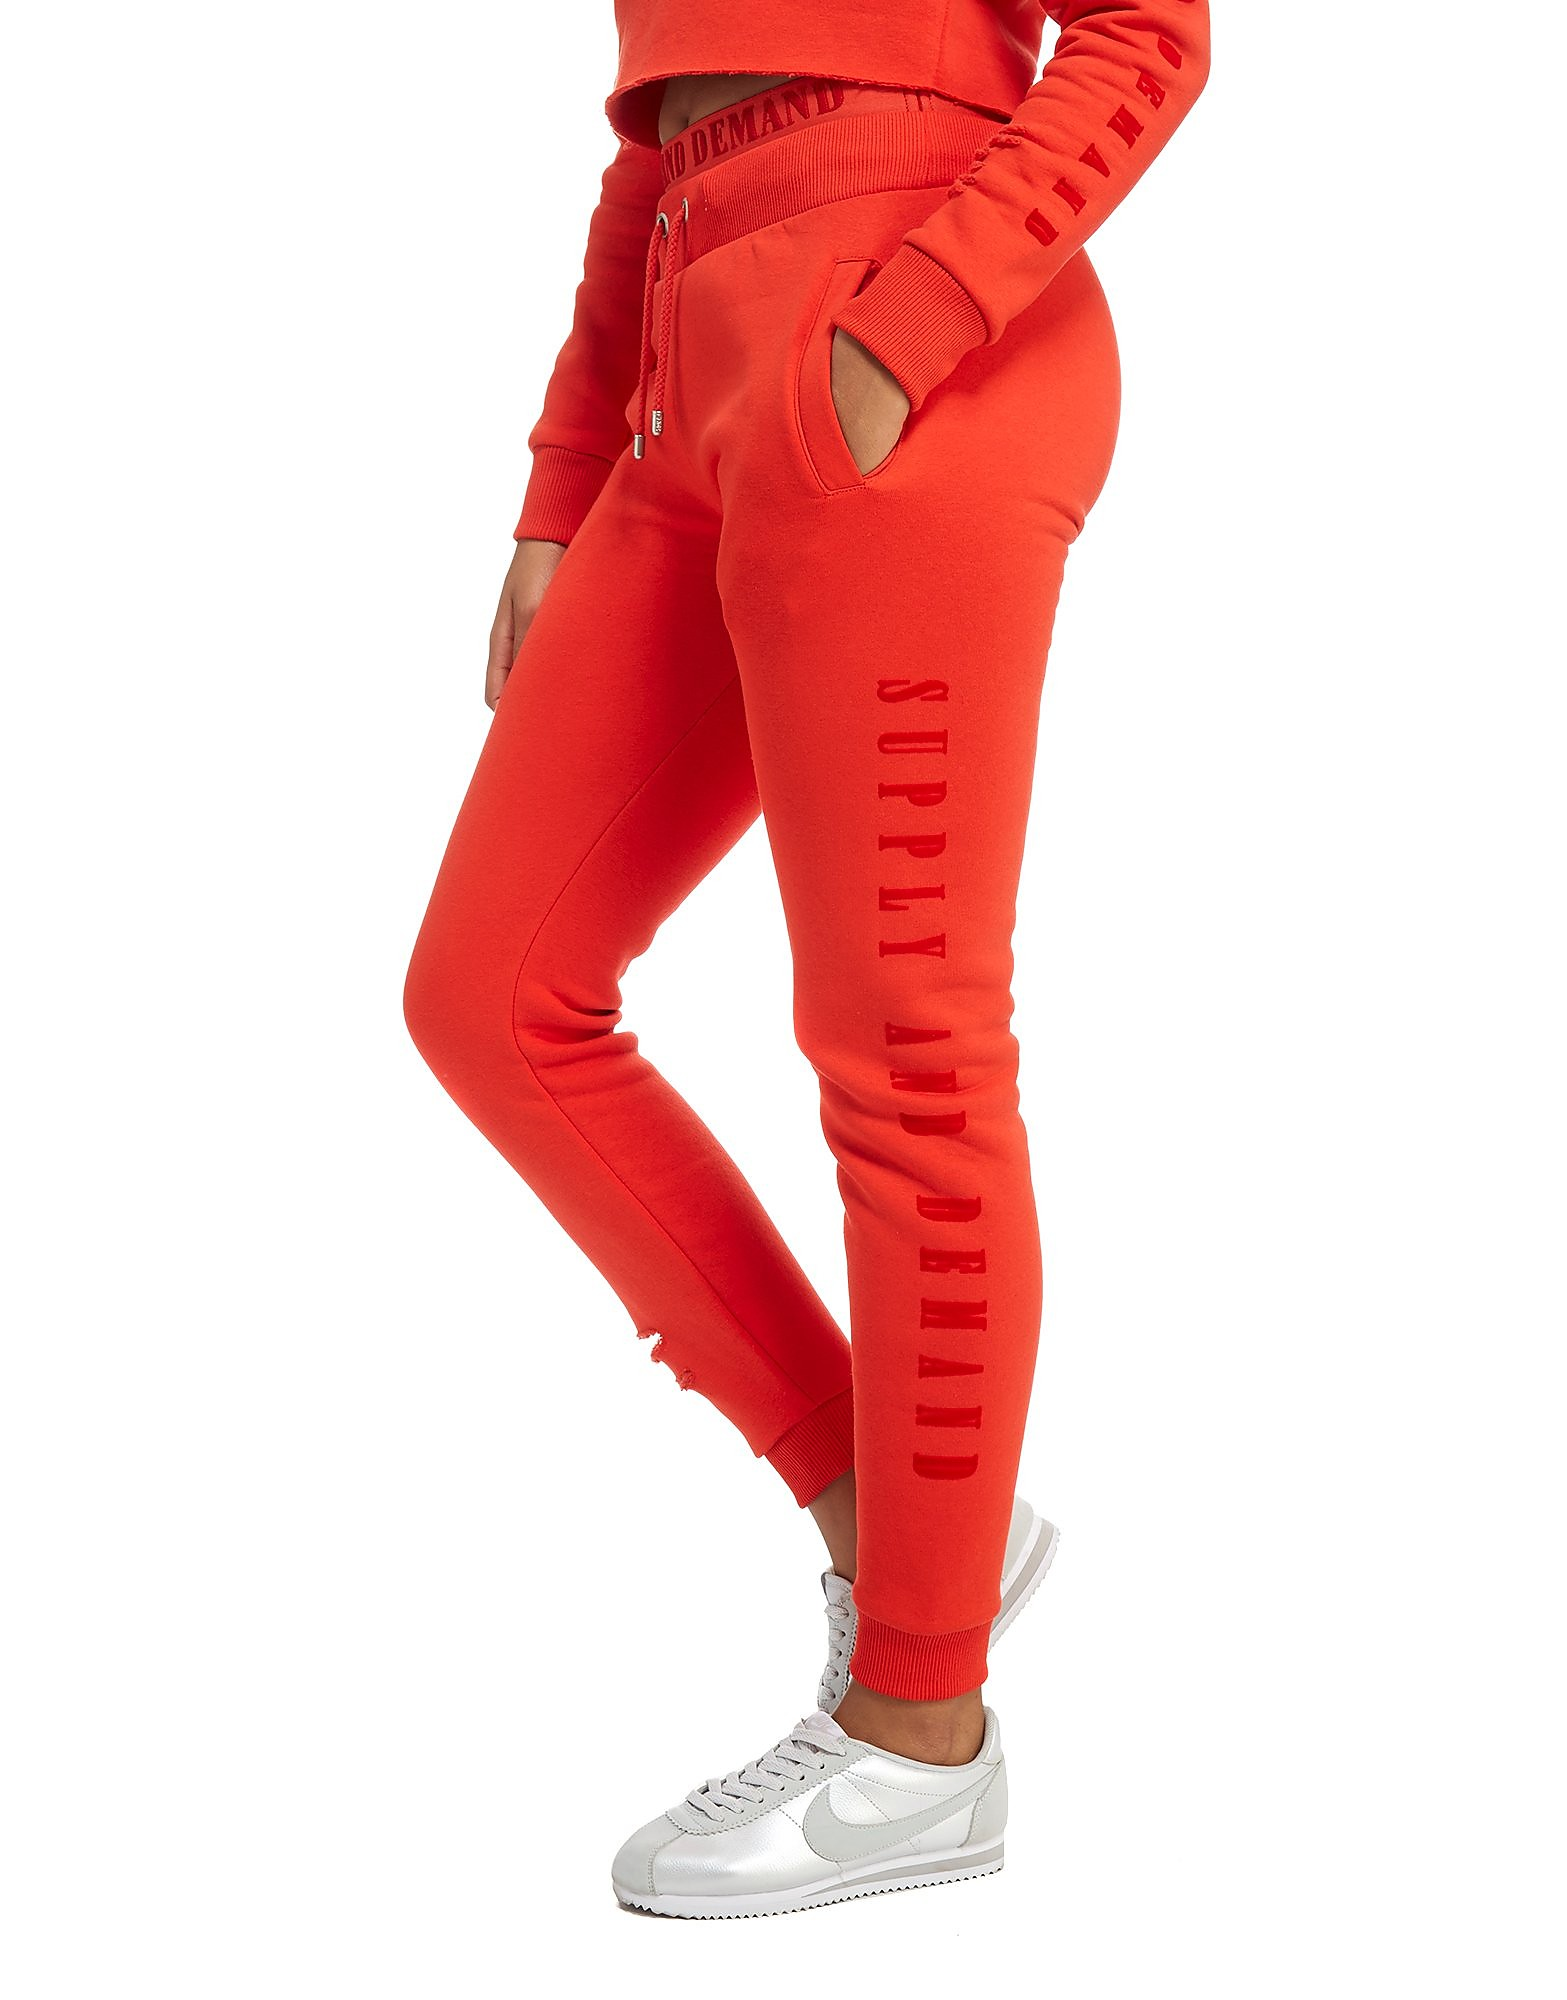 Supply & Demand Rip Joggers - Only at JD - Red, Red